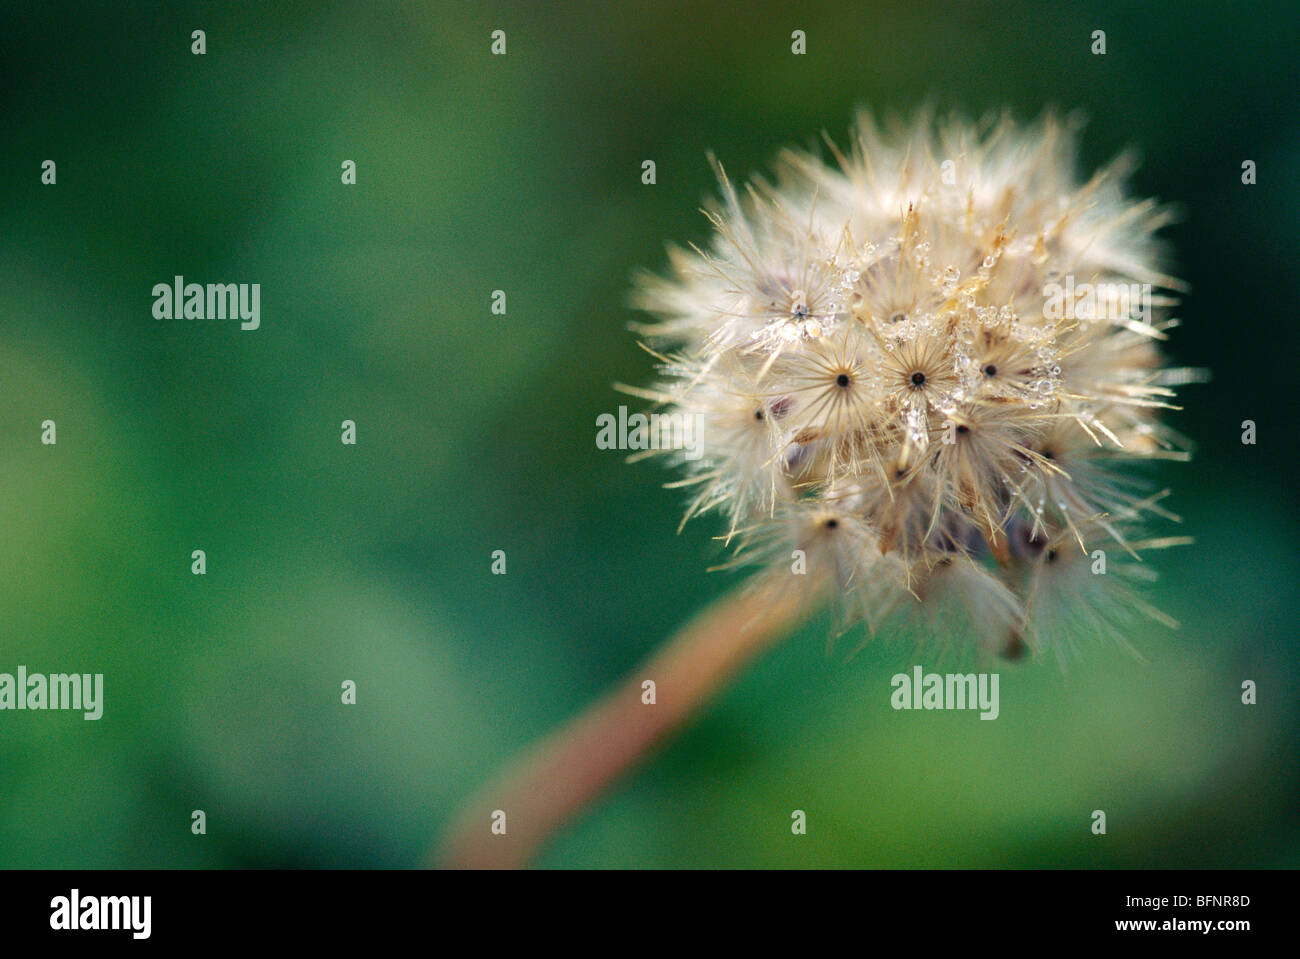 TAN 62862 : Frost on dry flower ; India - Stock Image